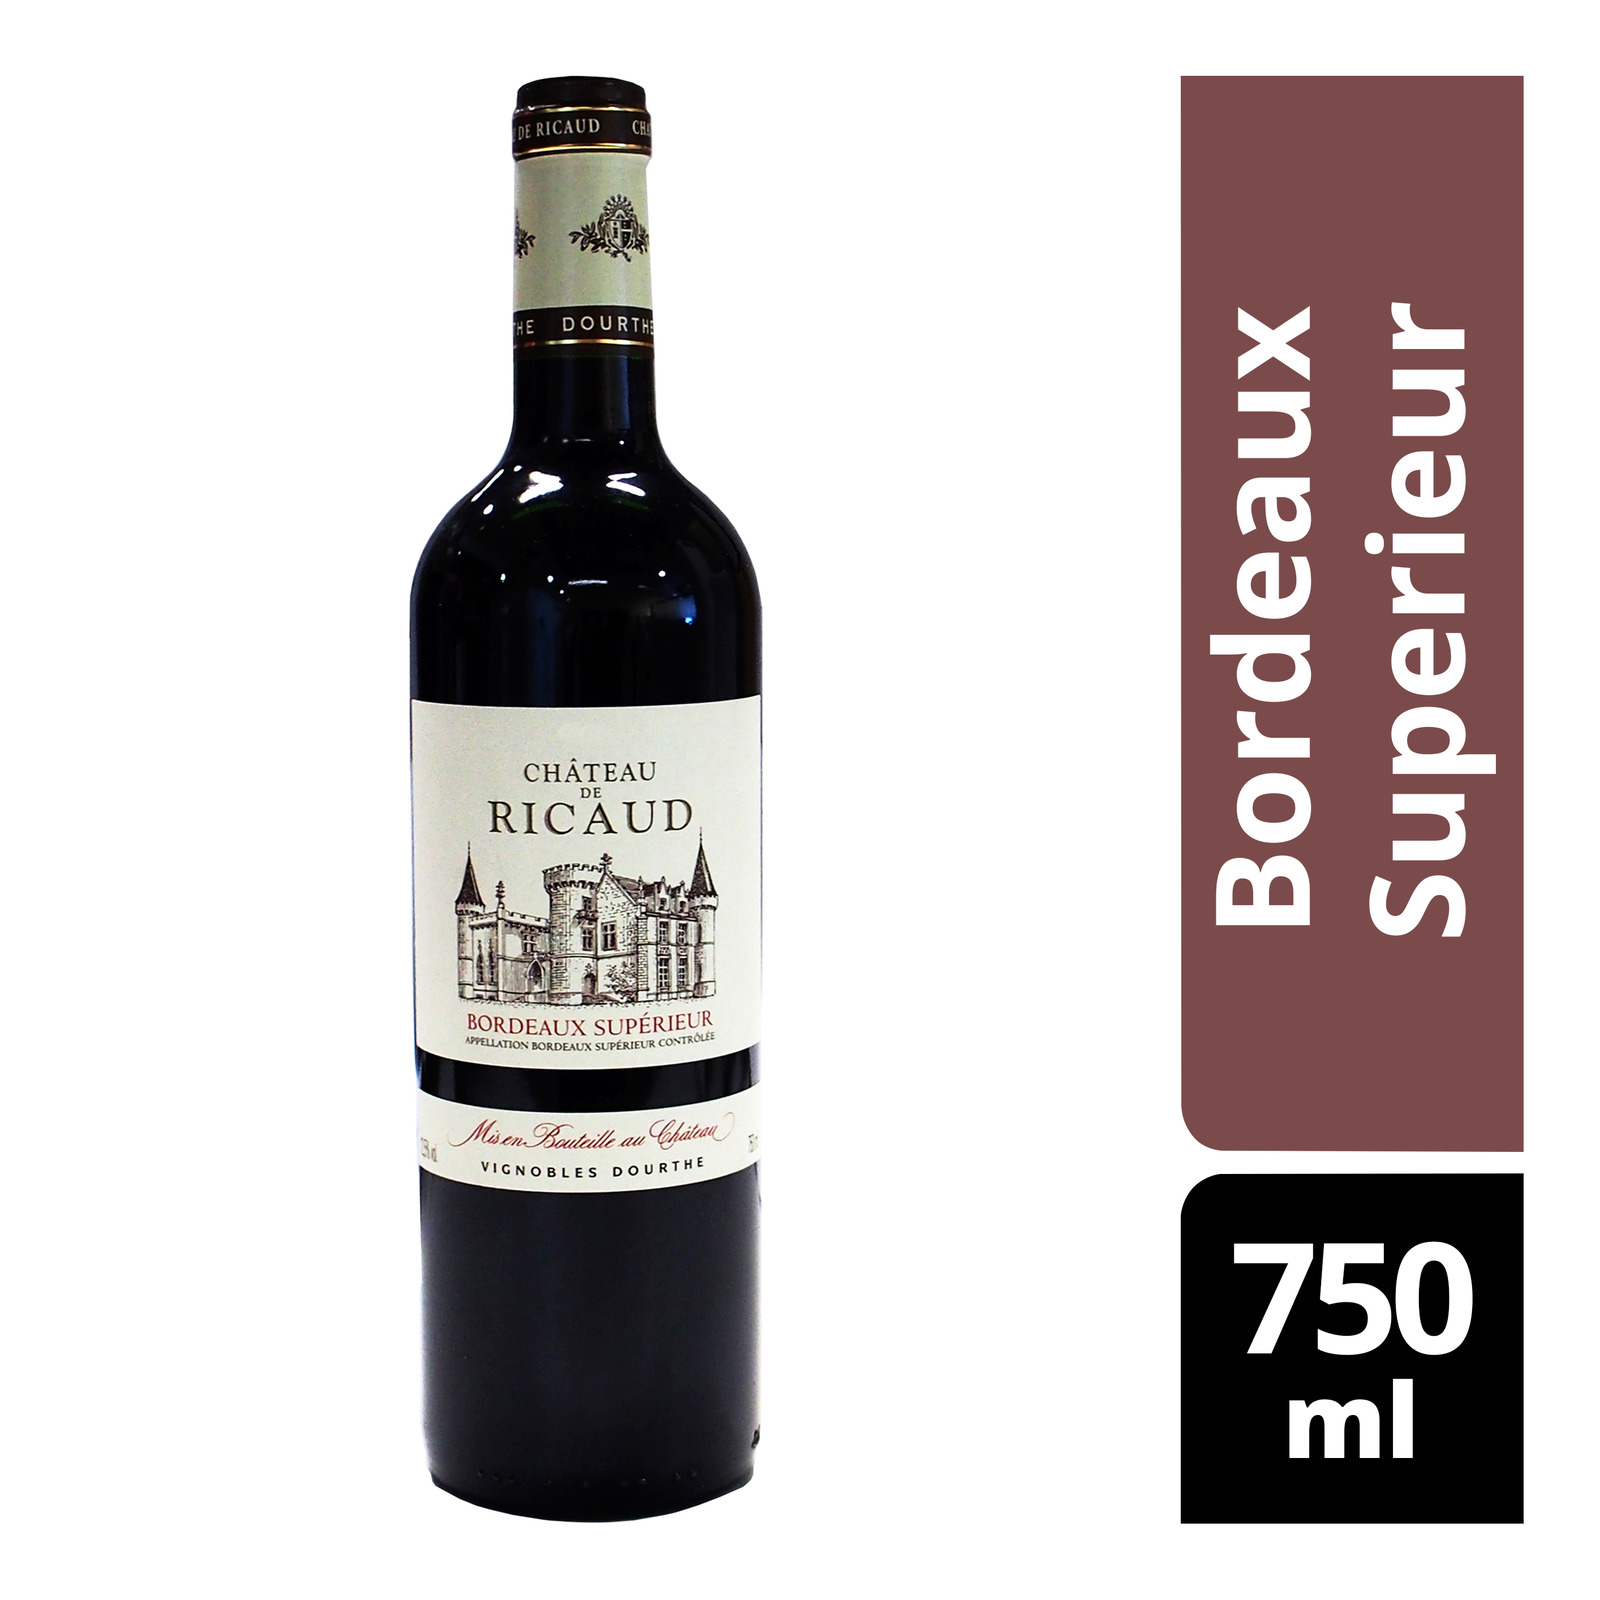 Chateau de Ricaud Red Wine - Bordeaux Superieur